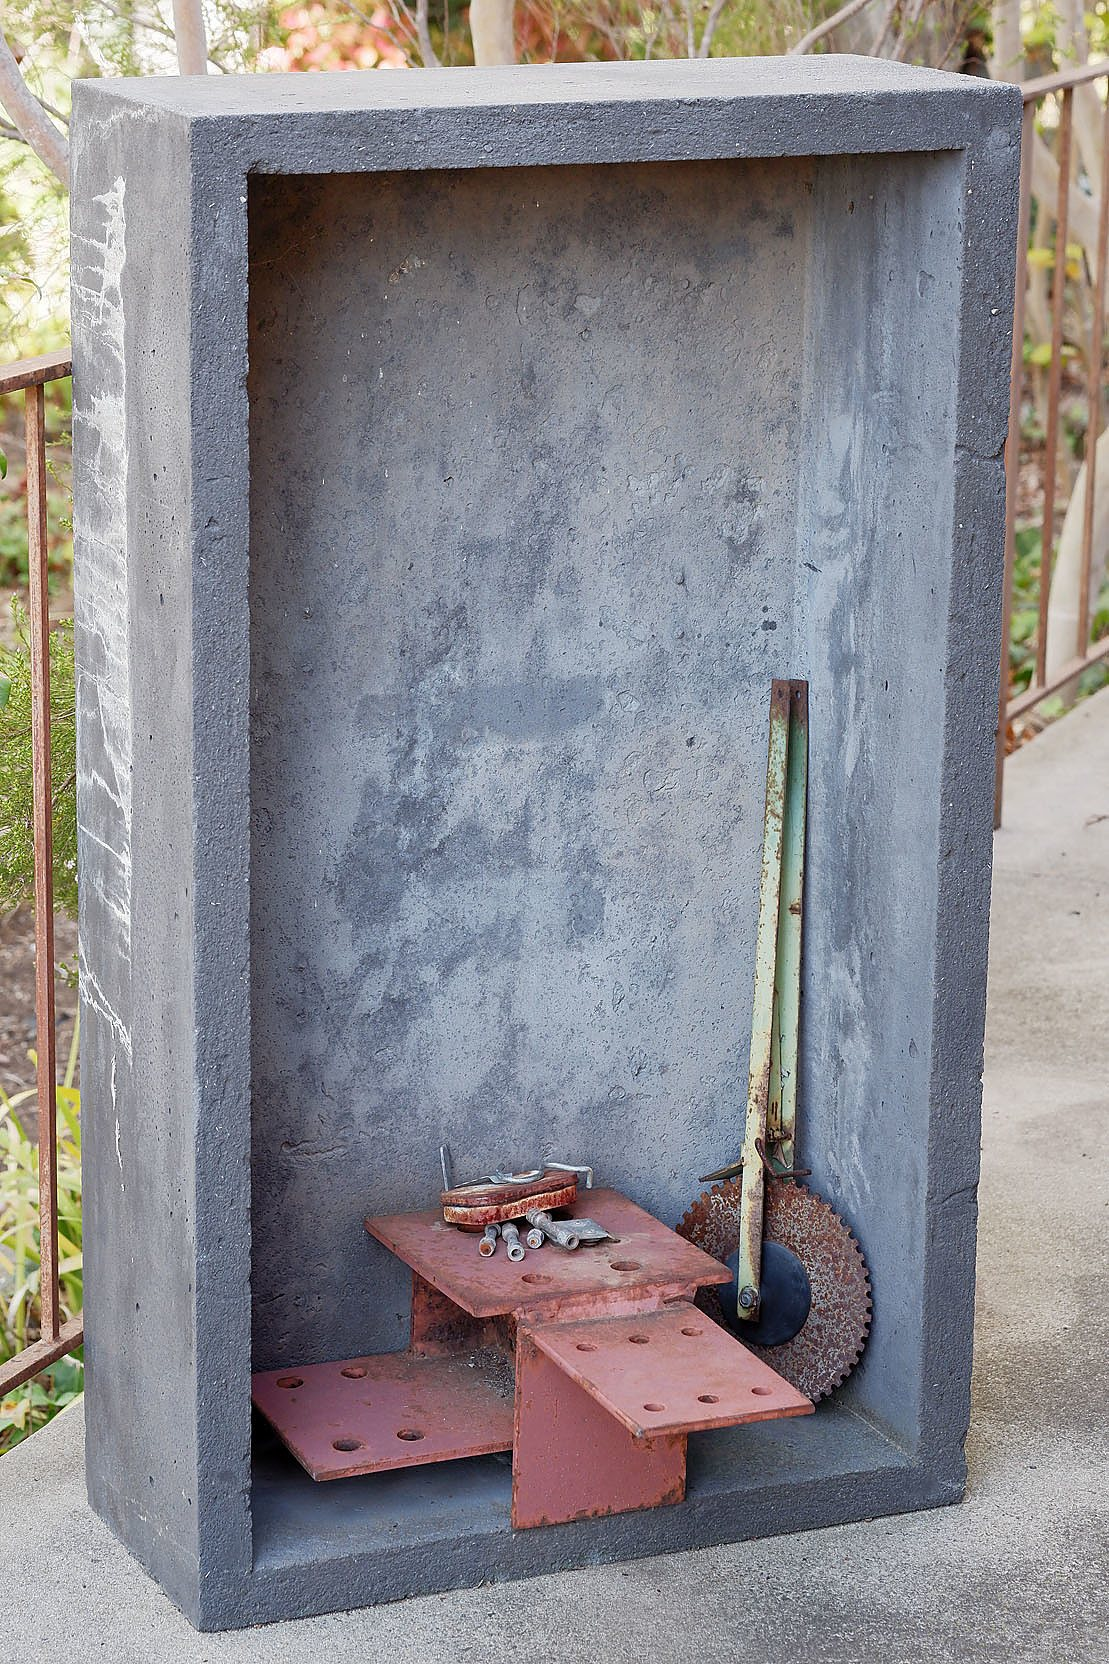 'Abstract Sculpture, Cast Concrete with Assemblage of Found Steel Objects'